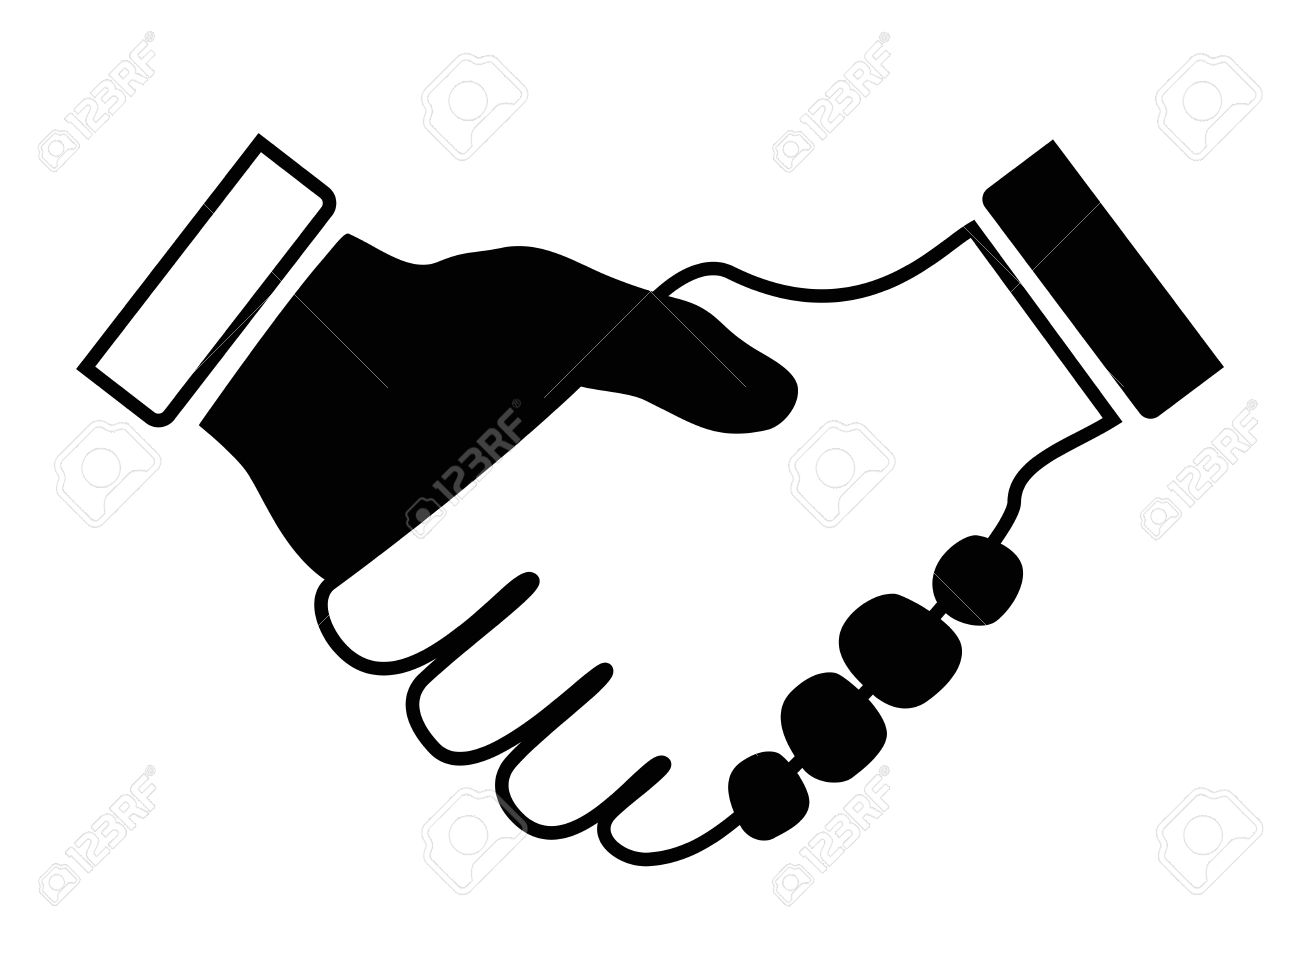 Handshake clipart black and white png library Hands Shaking Clipart | Free download best Hands Shaking Clipart on ... png library